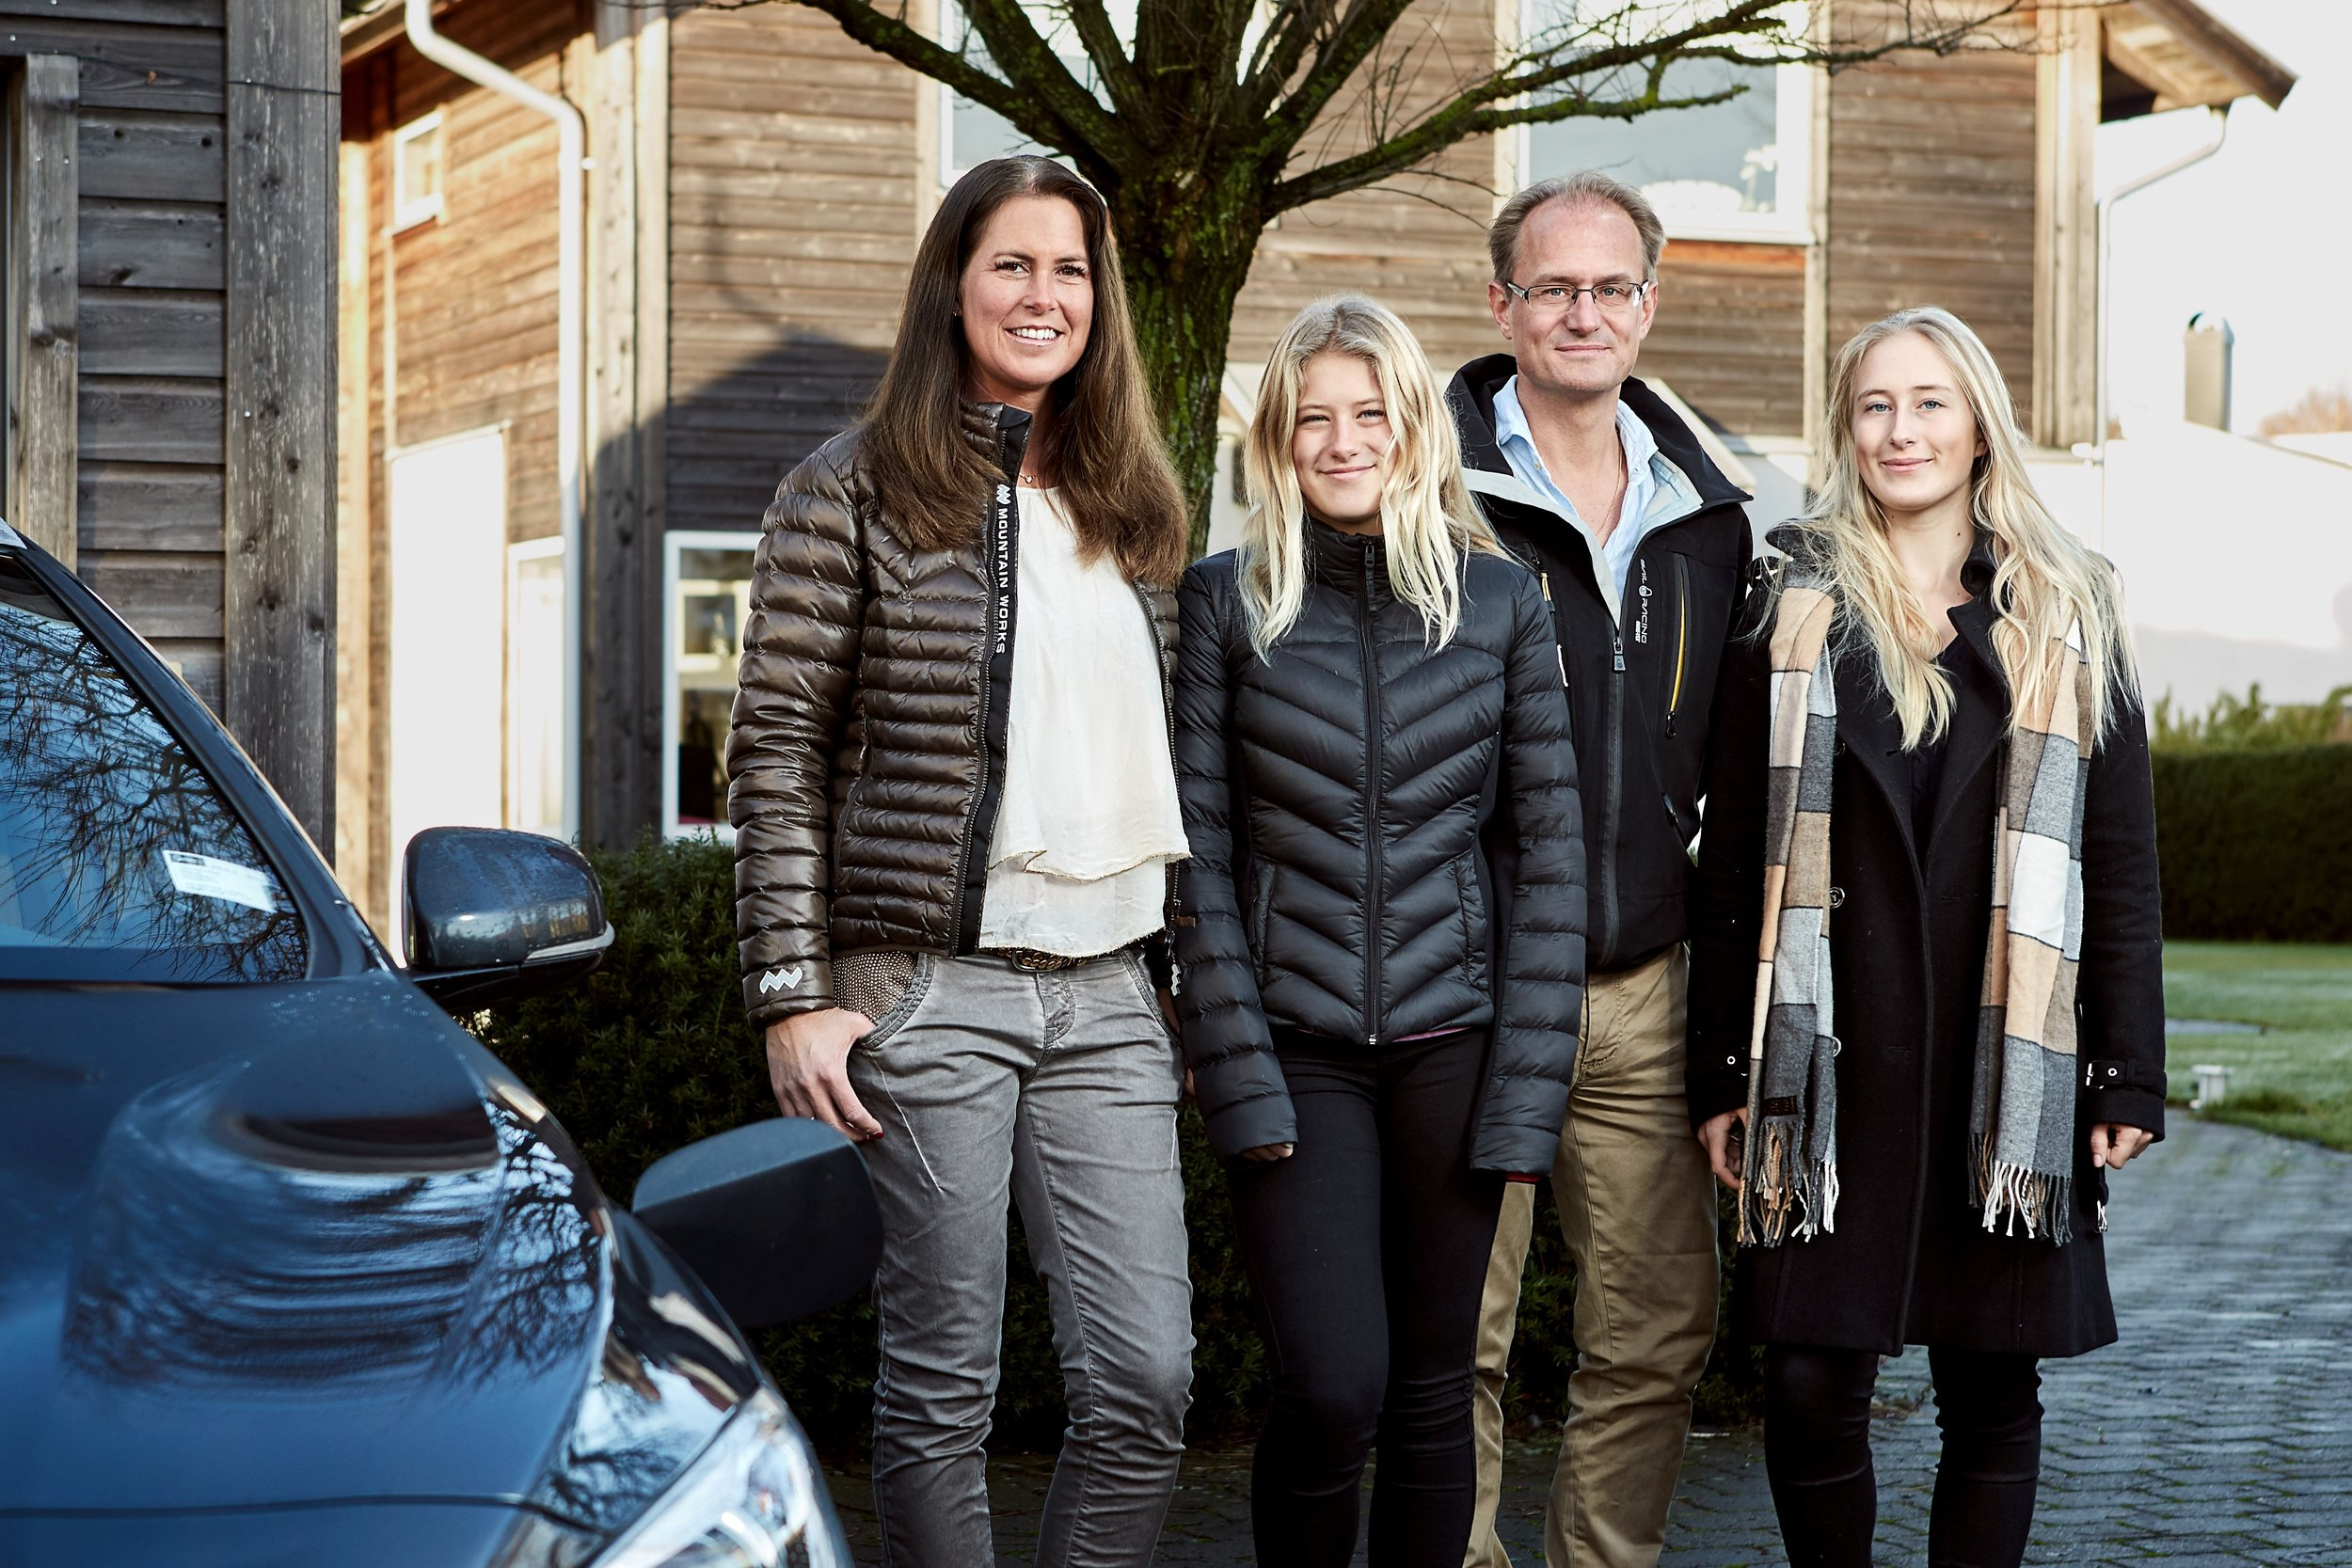 The hains from gothenburg, sweden, will be one of the first families to take part in volvo's self-driving car research project, drive me